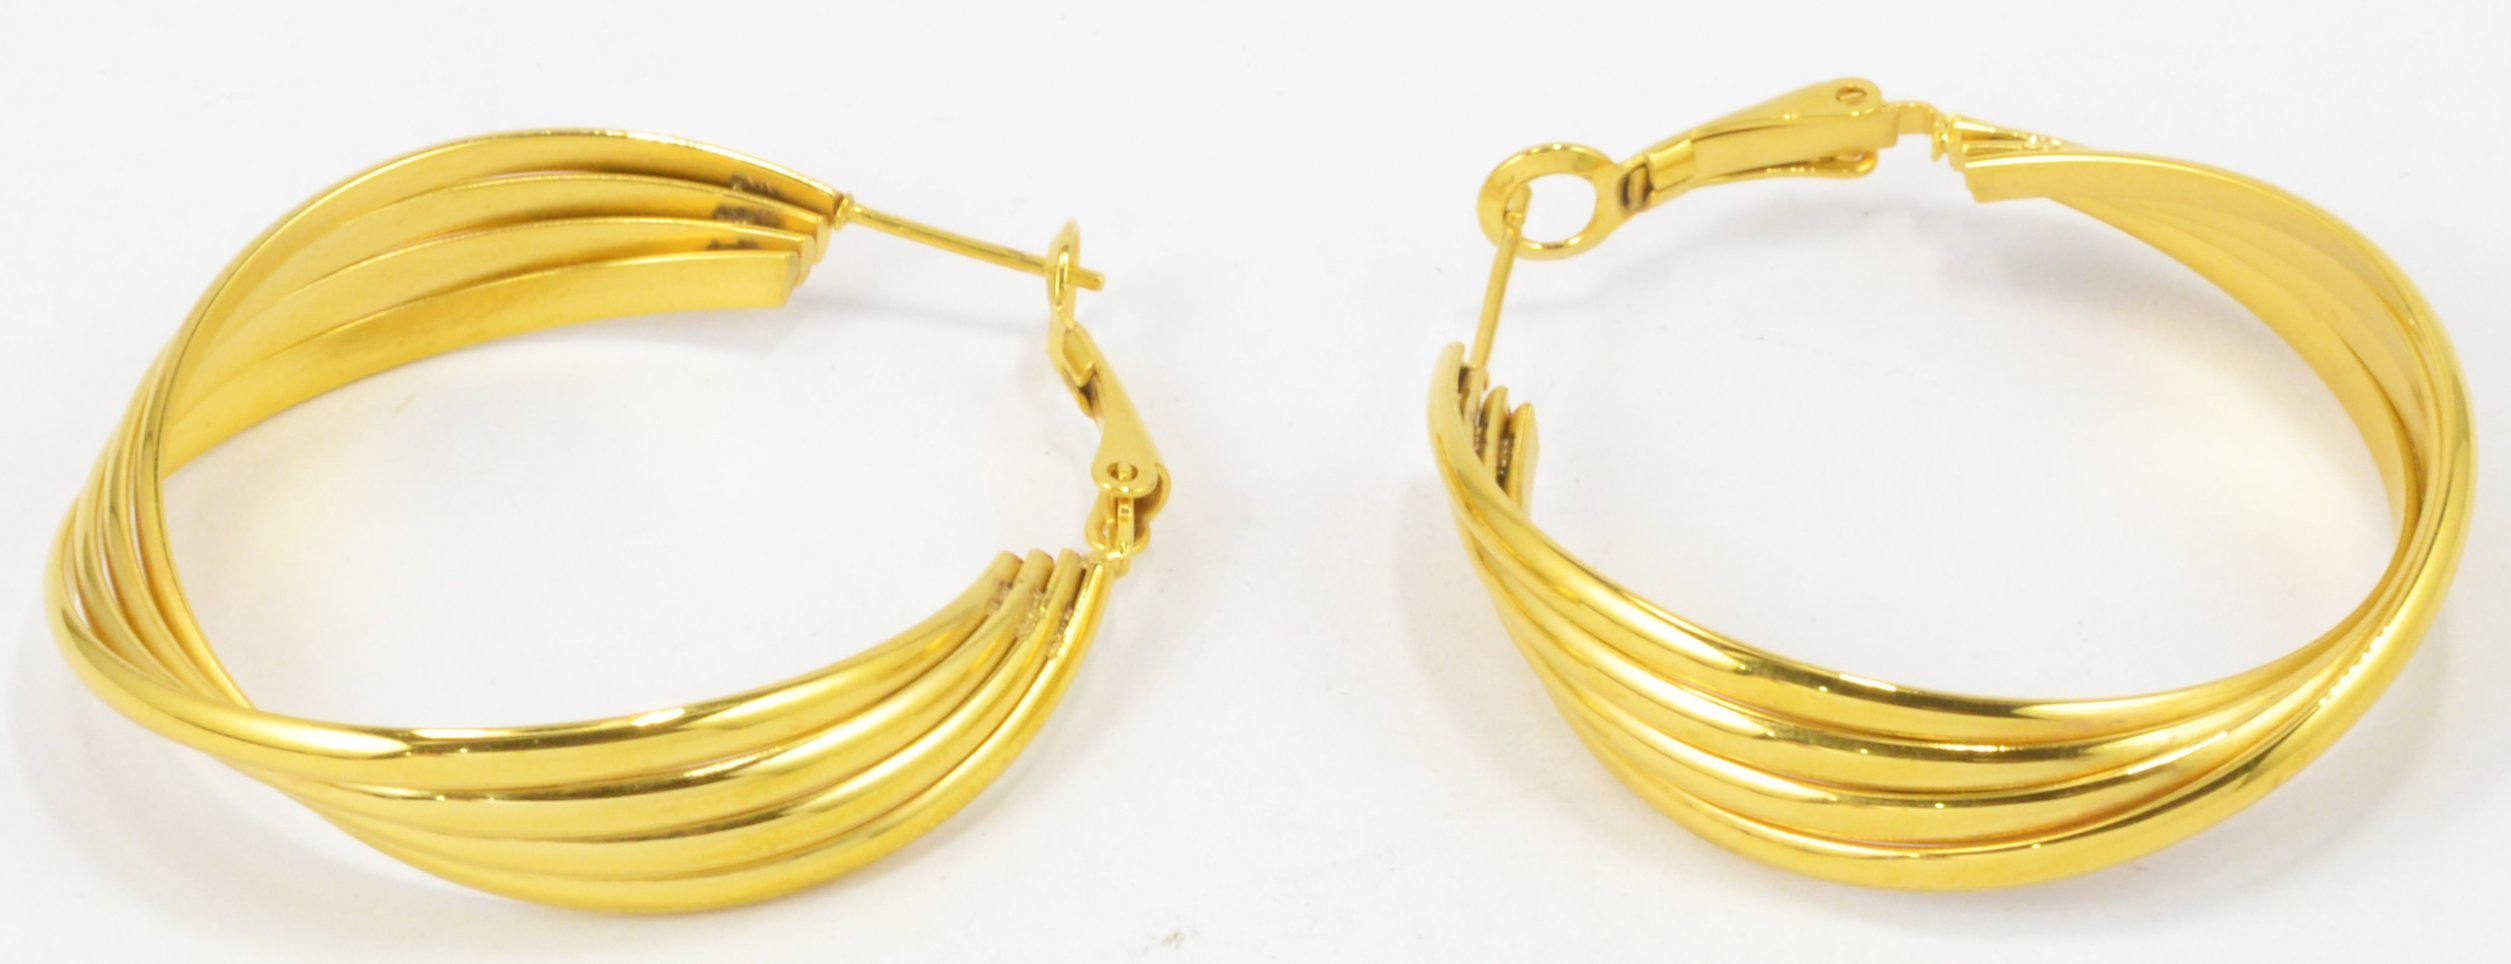 Big Hoop Earrings Stainless Steel Earrings for Young Women Fashion Jwelleries